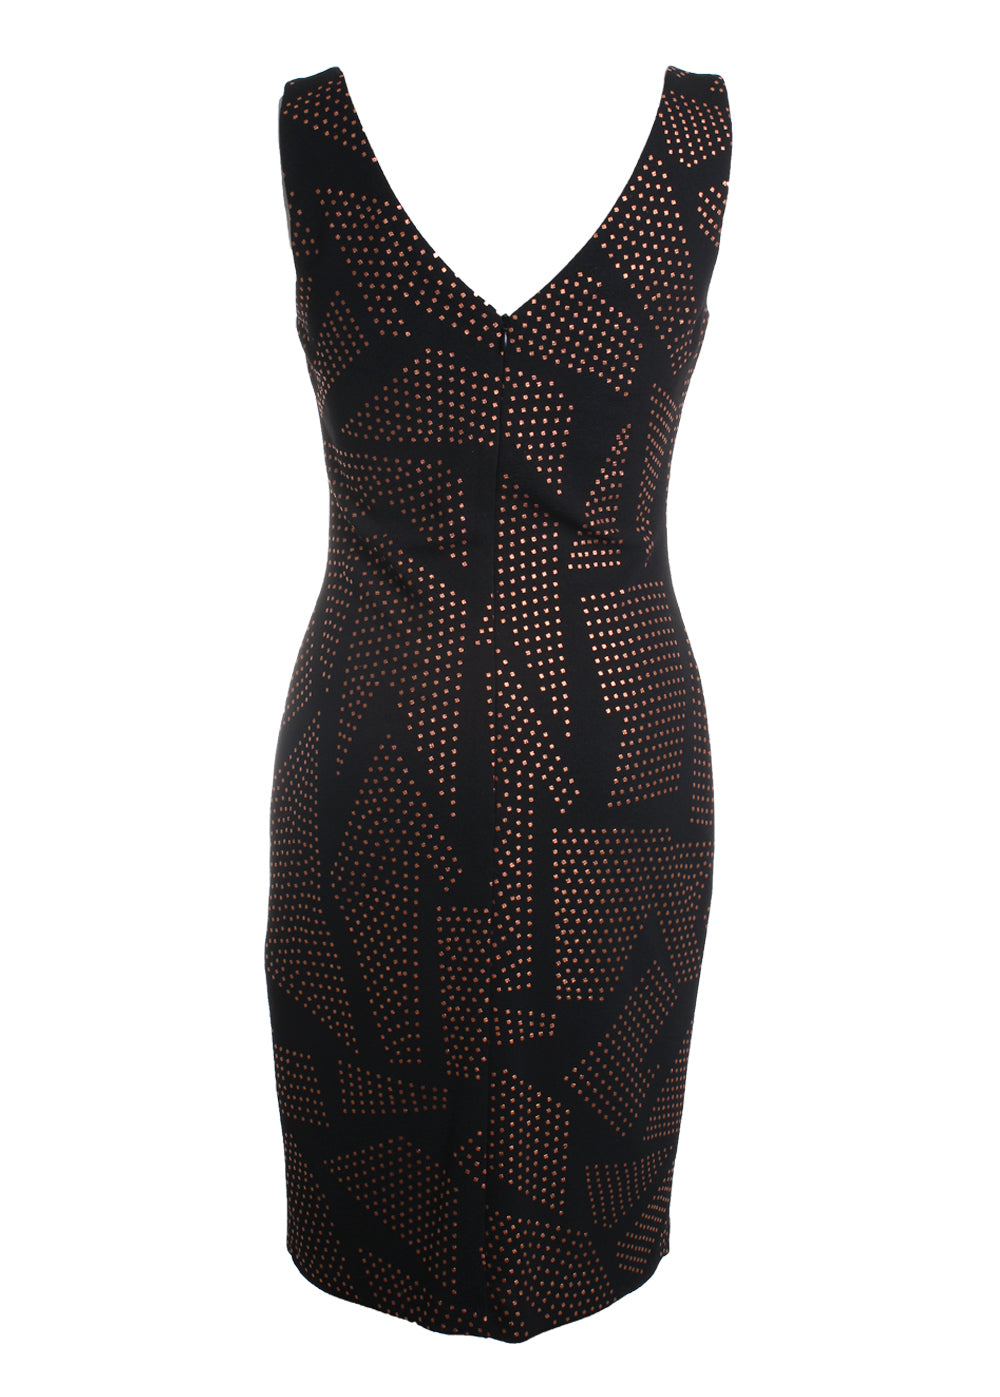 Flocked Abstract Dotted Shift Dress